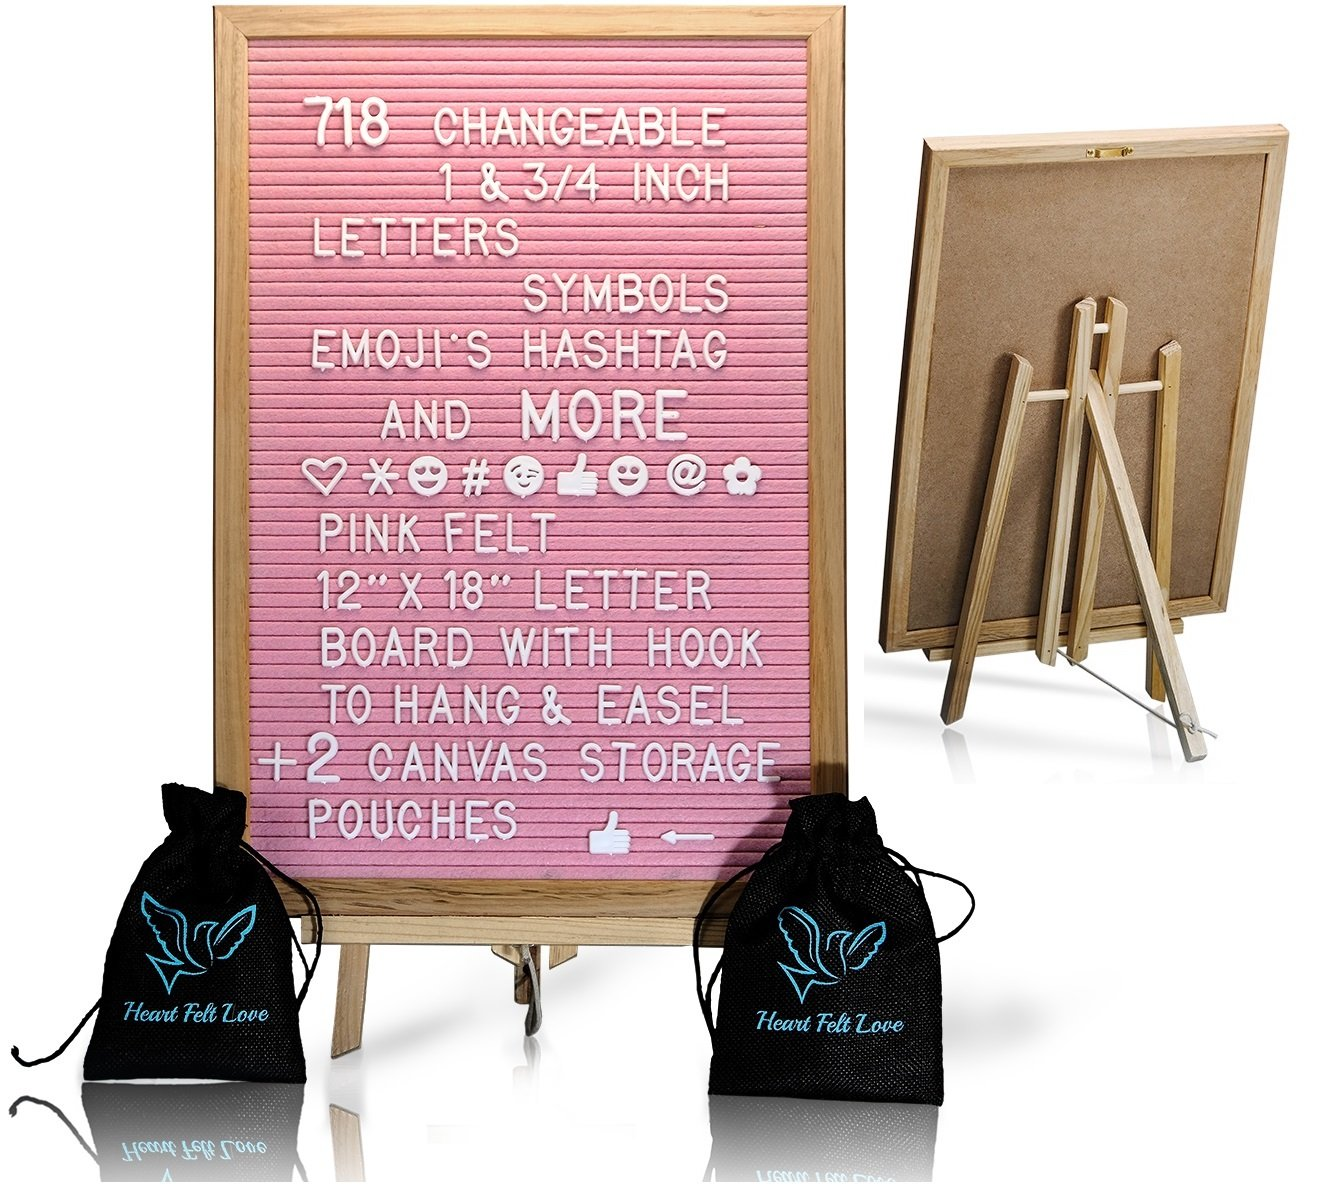 Pink Felt Letter Board With Easel Stand 12 x 18 | 718 Changeable Characters Including 1 inch and ¾ Letters, Symbols, Emojis Hashtag And More | Great For Instagram | Hook To Hang | 2 Storage Pouches Heart Felt Love